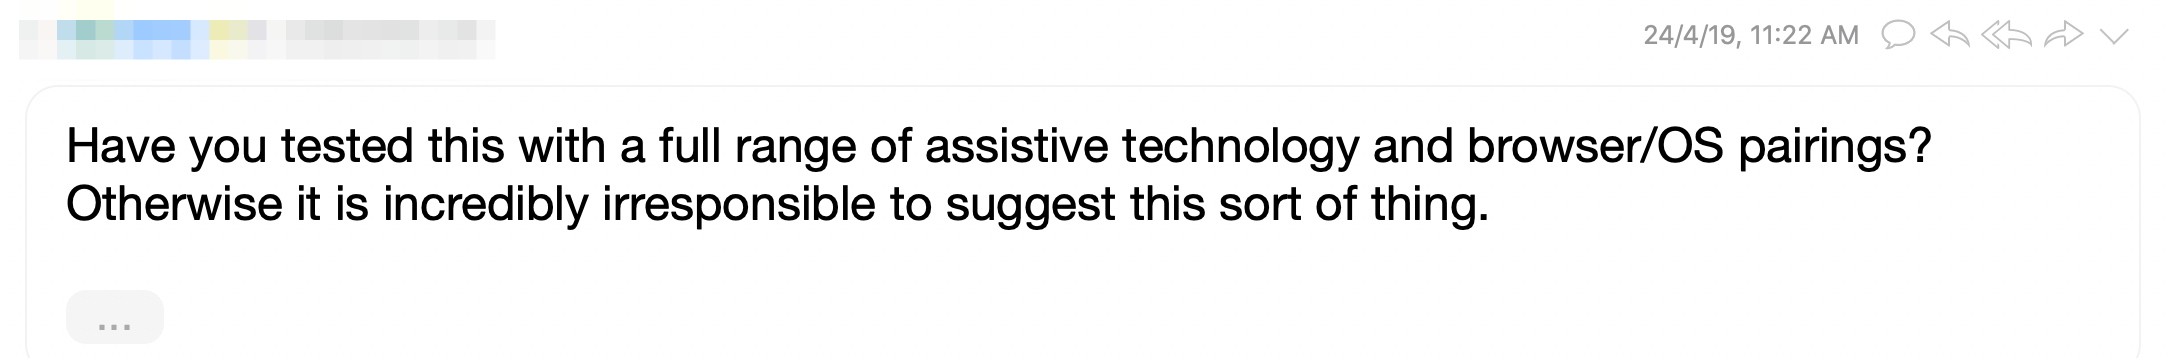 Email that asked if I tested this with a full range of assistive technology and browser pairings. If I didn't, then I'm being incredibly irresponsible.